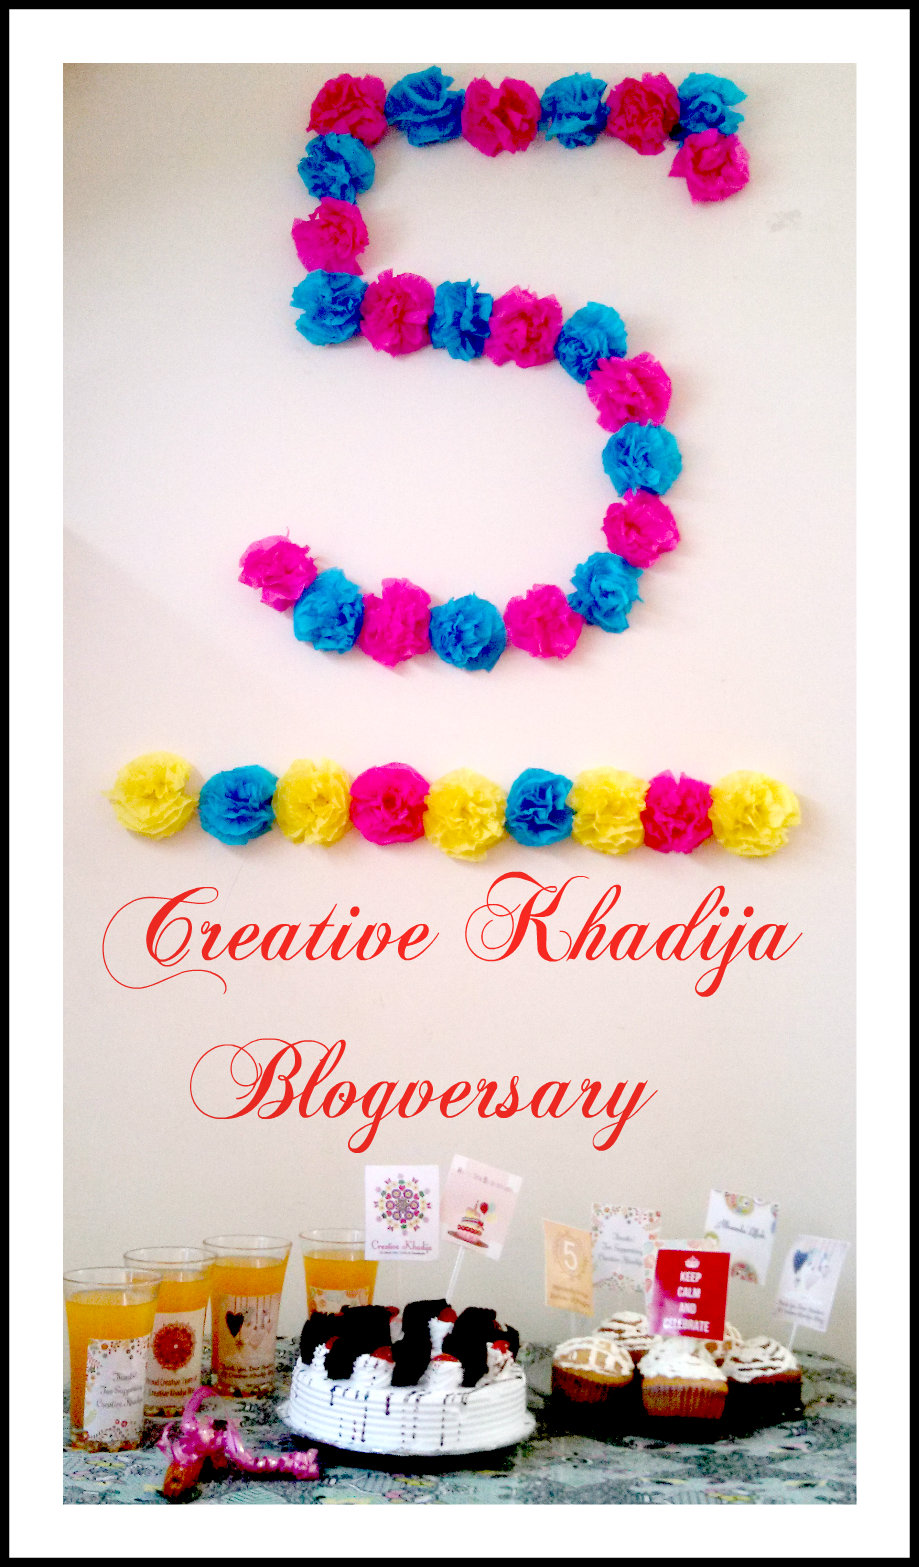 creativekhadija-blog-birthday-blogversary-celebration